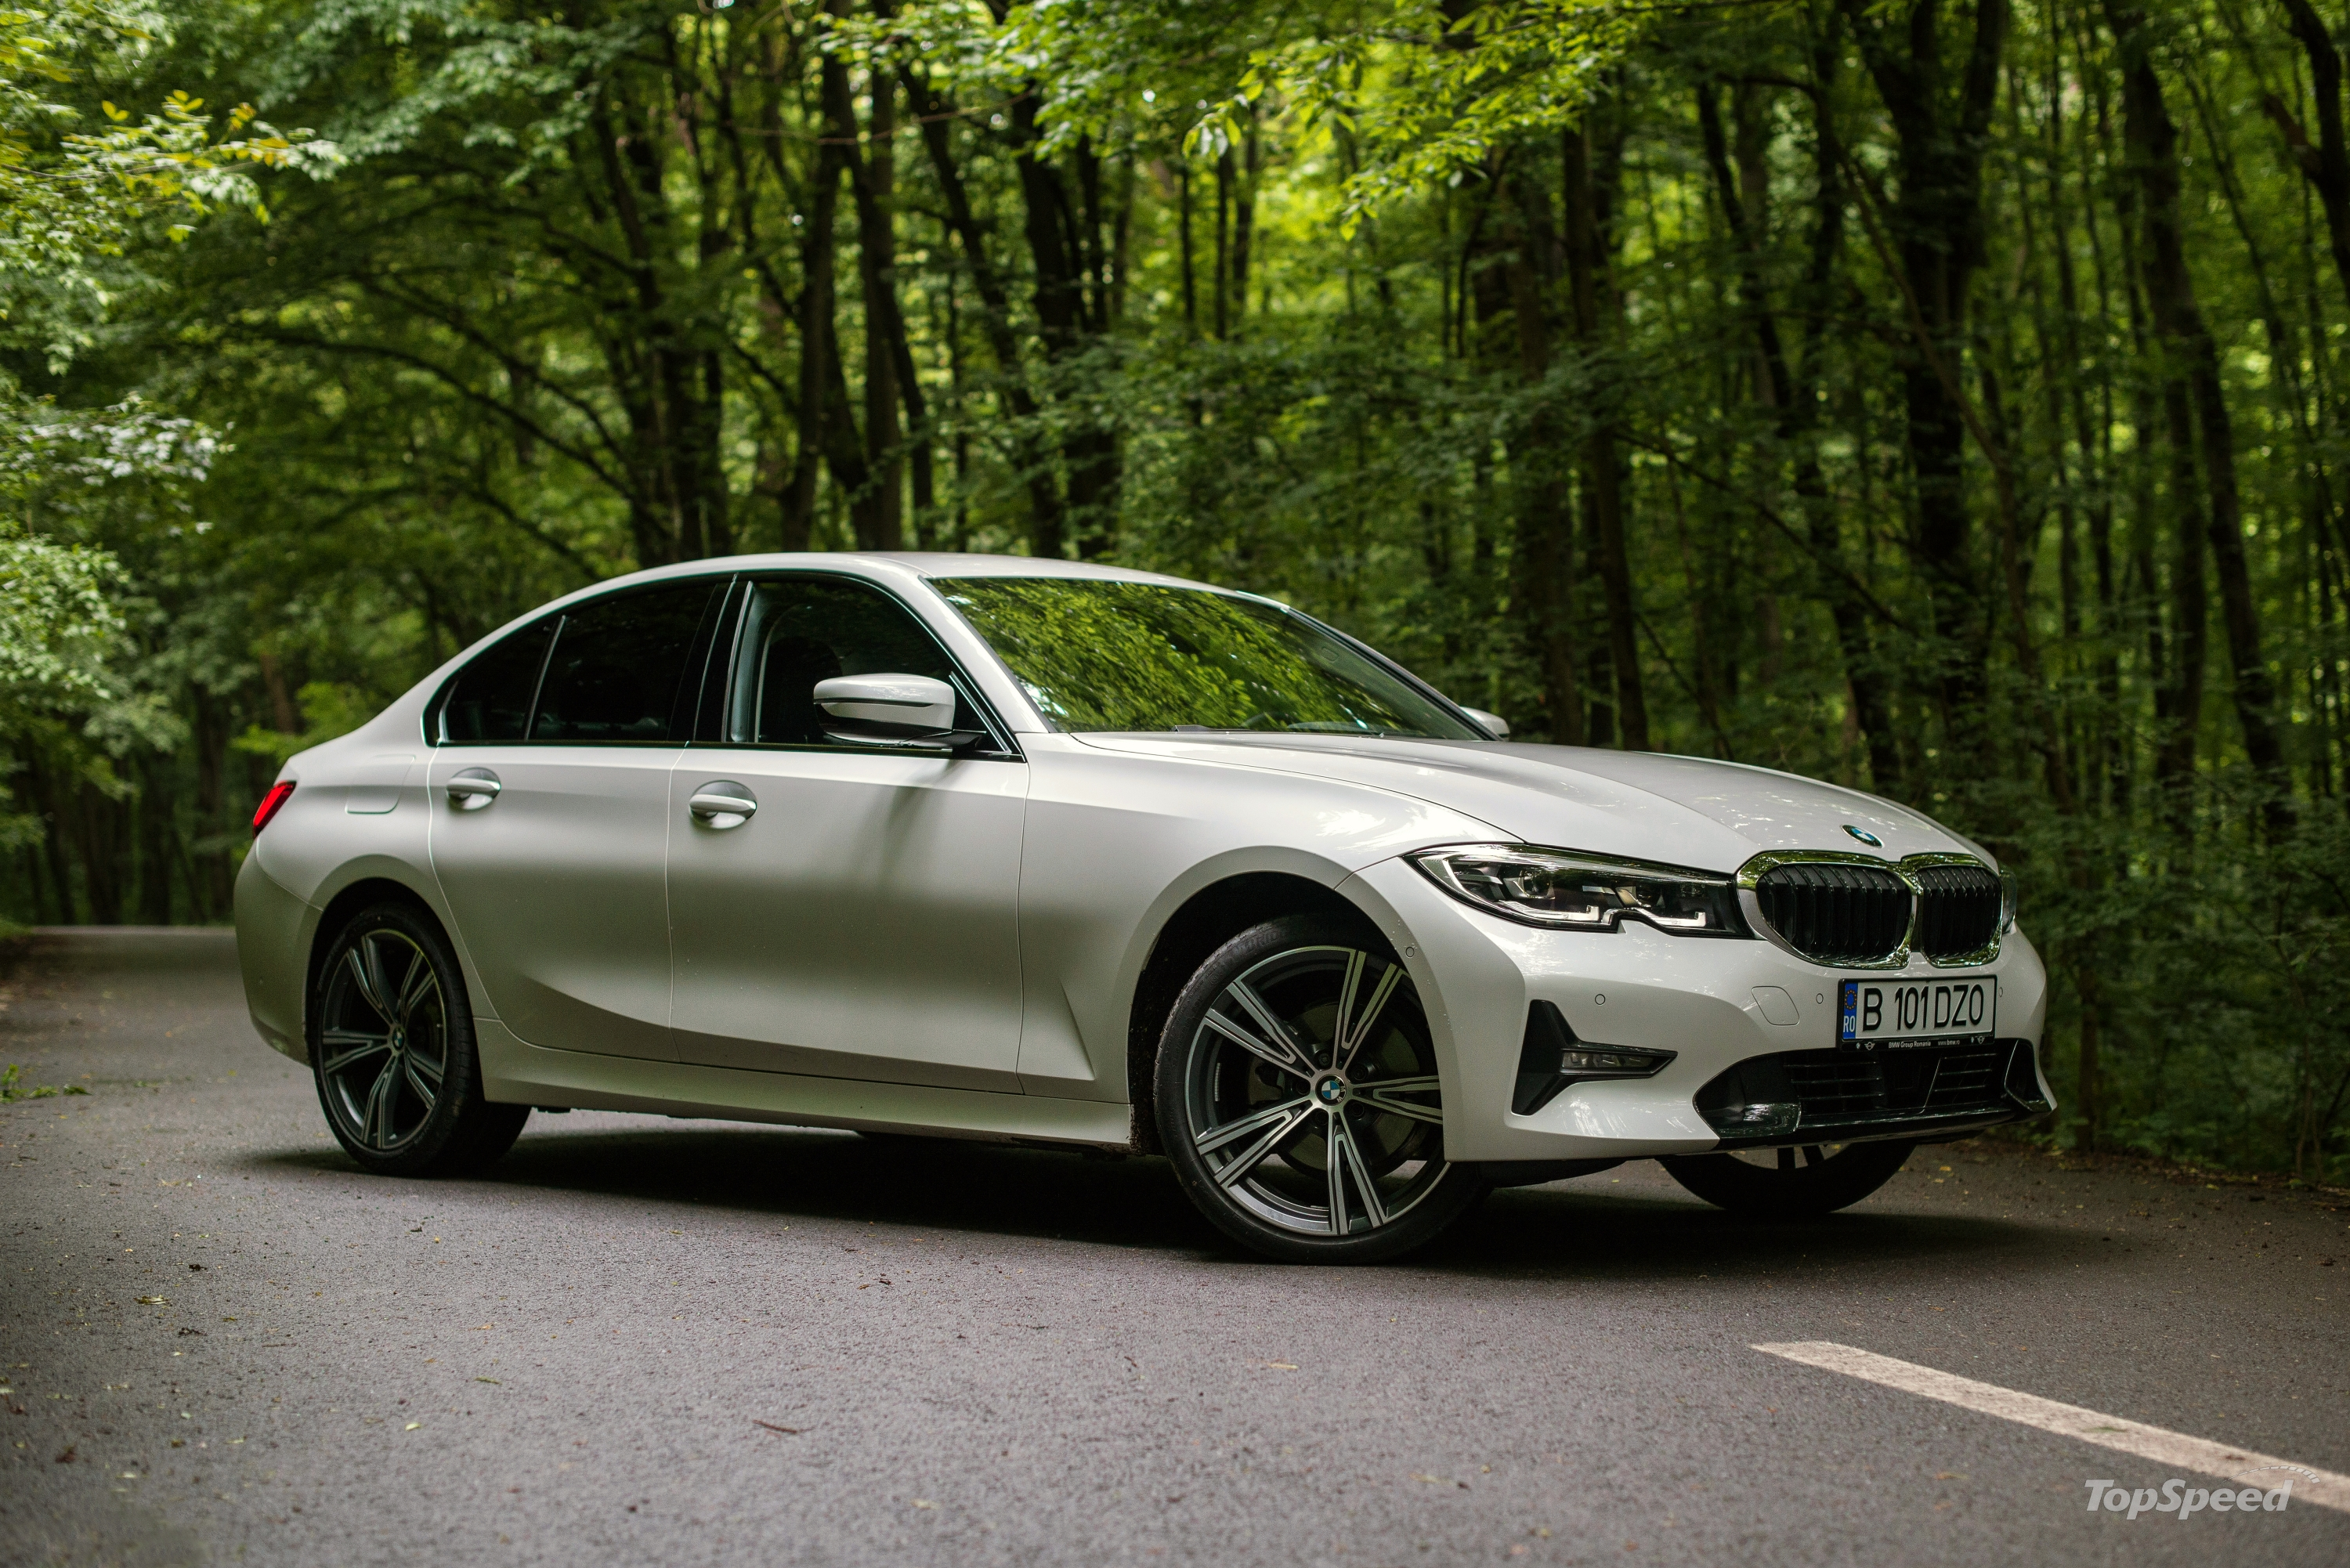 2019 Bmw 3 Series G20 Video Review Pictures Photos Wallpapers